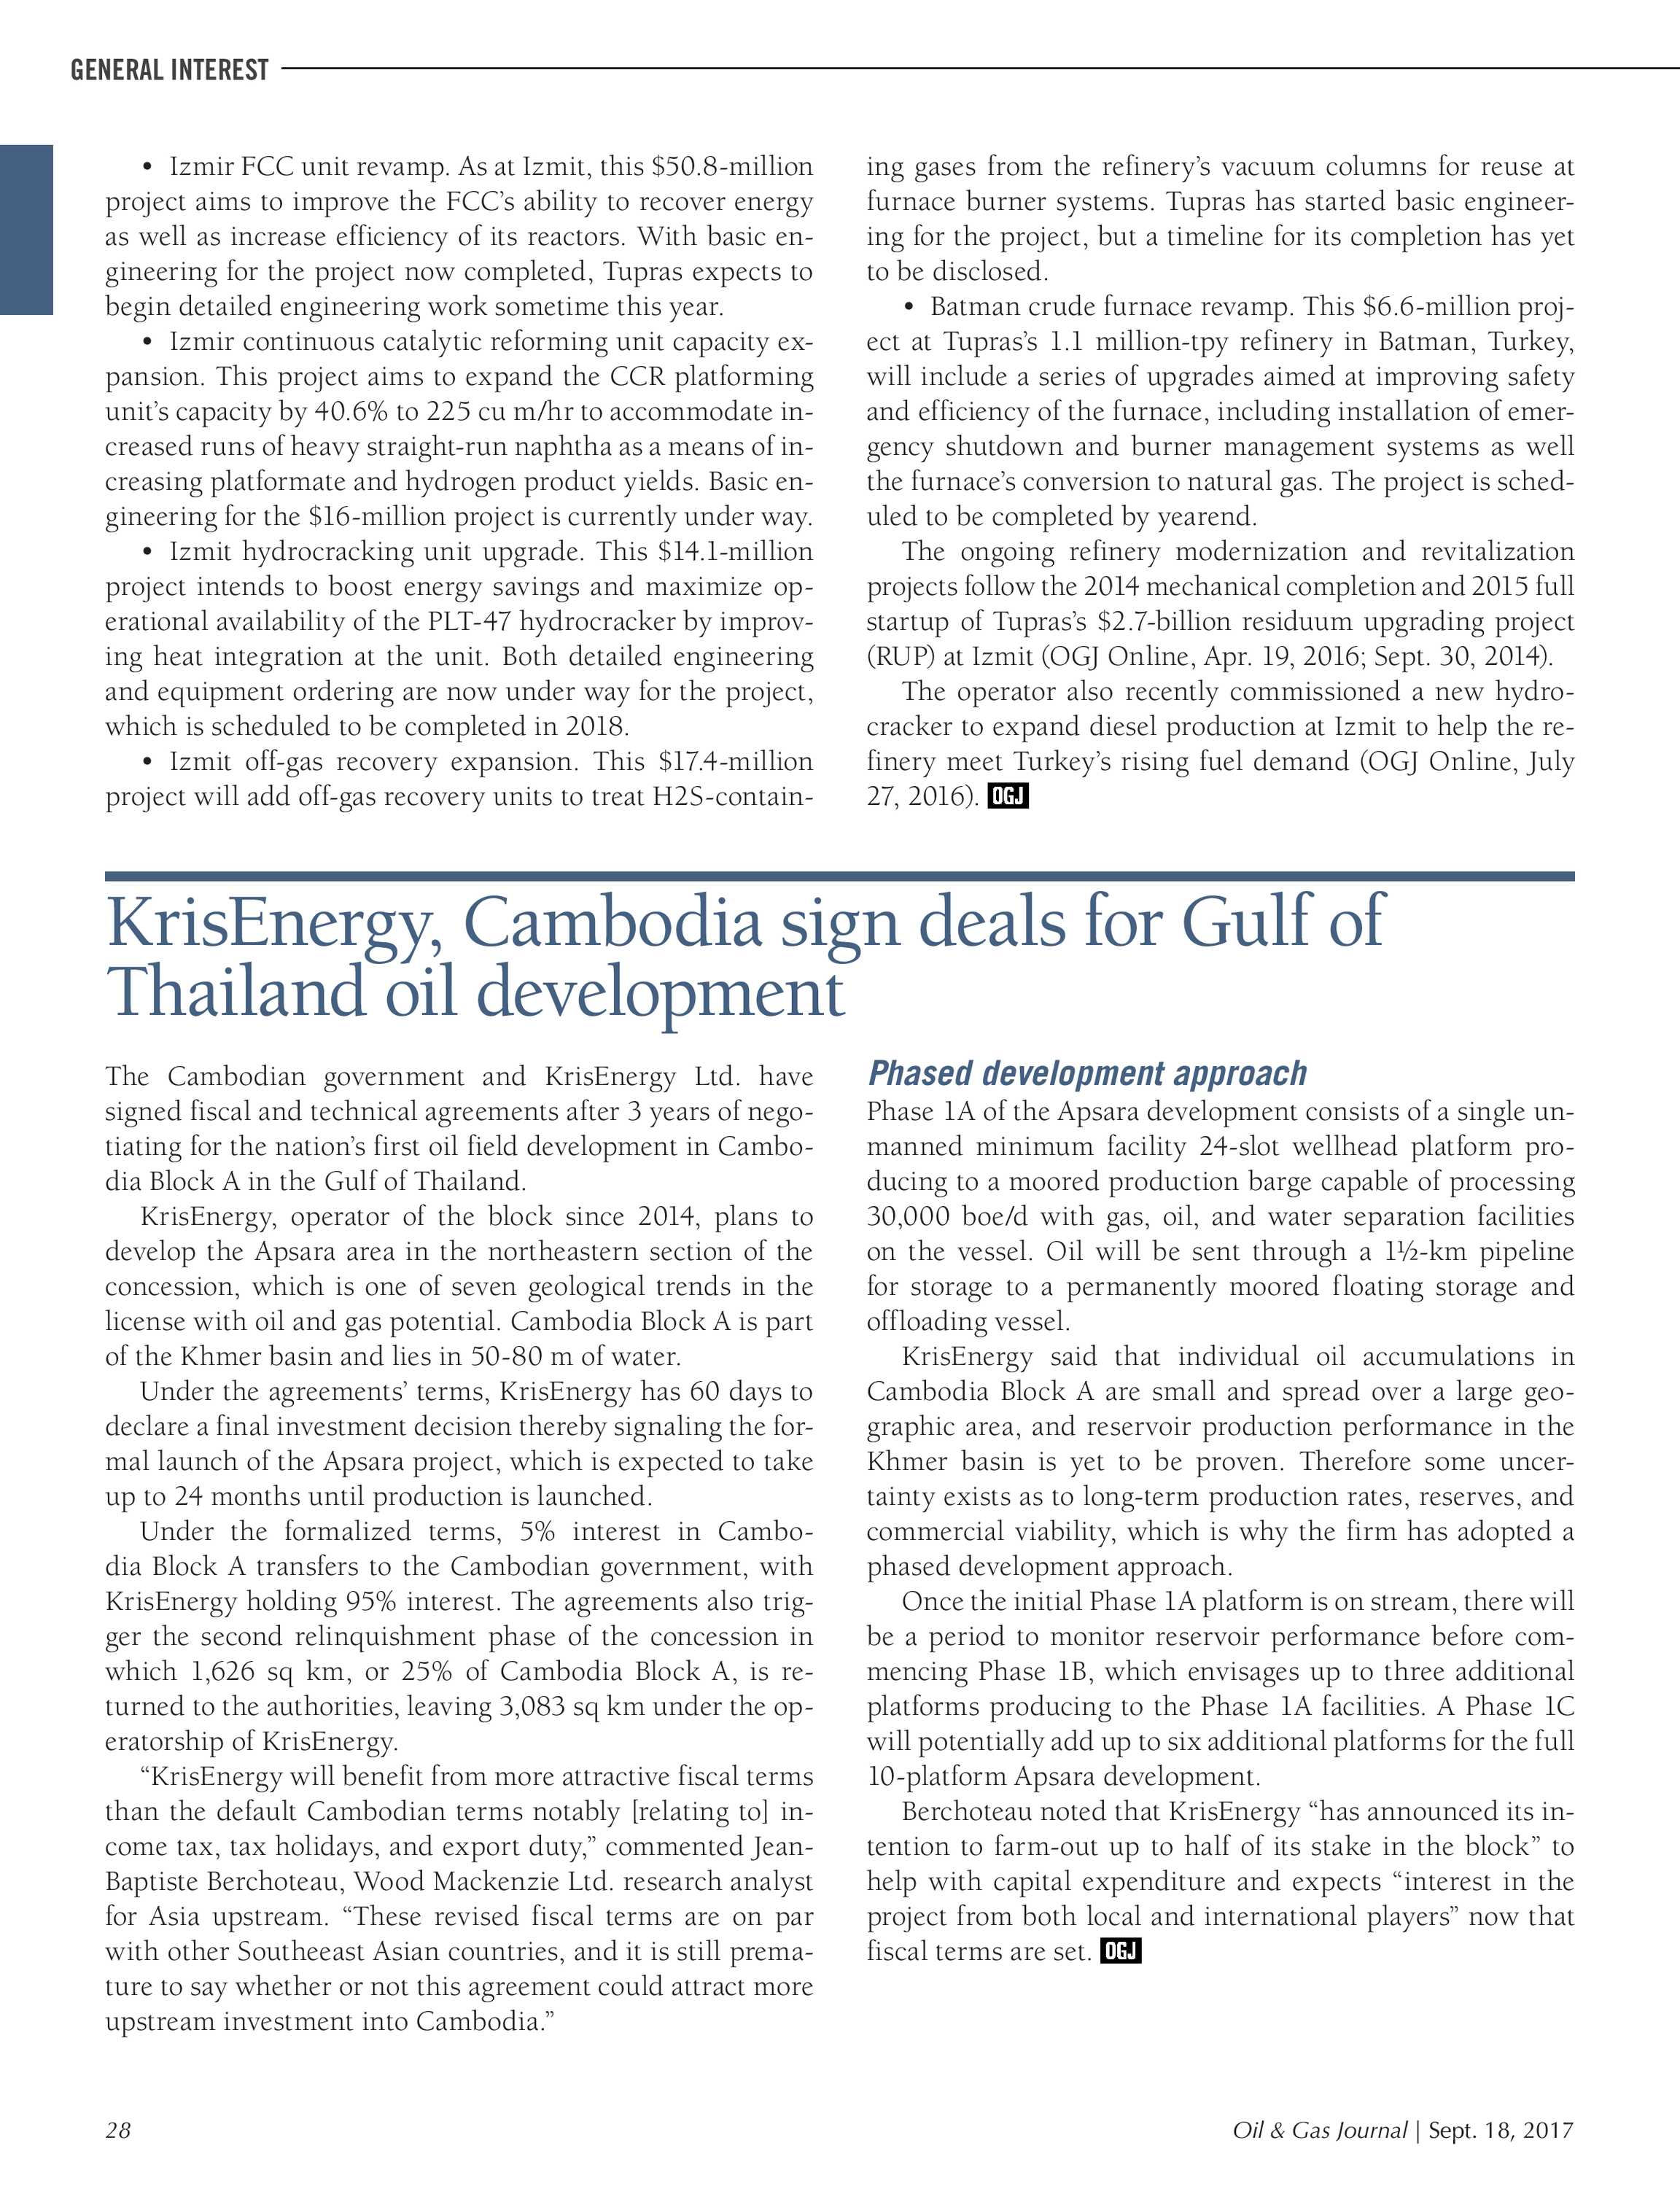 Oil & Gas Journal - September 18, 2017 - page 28